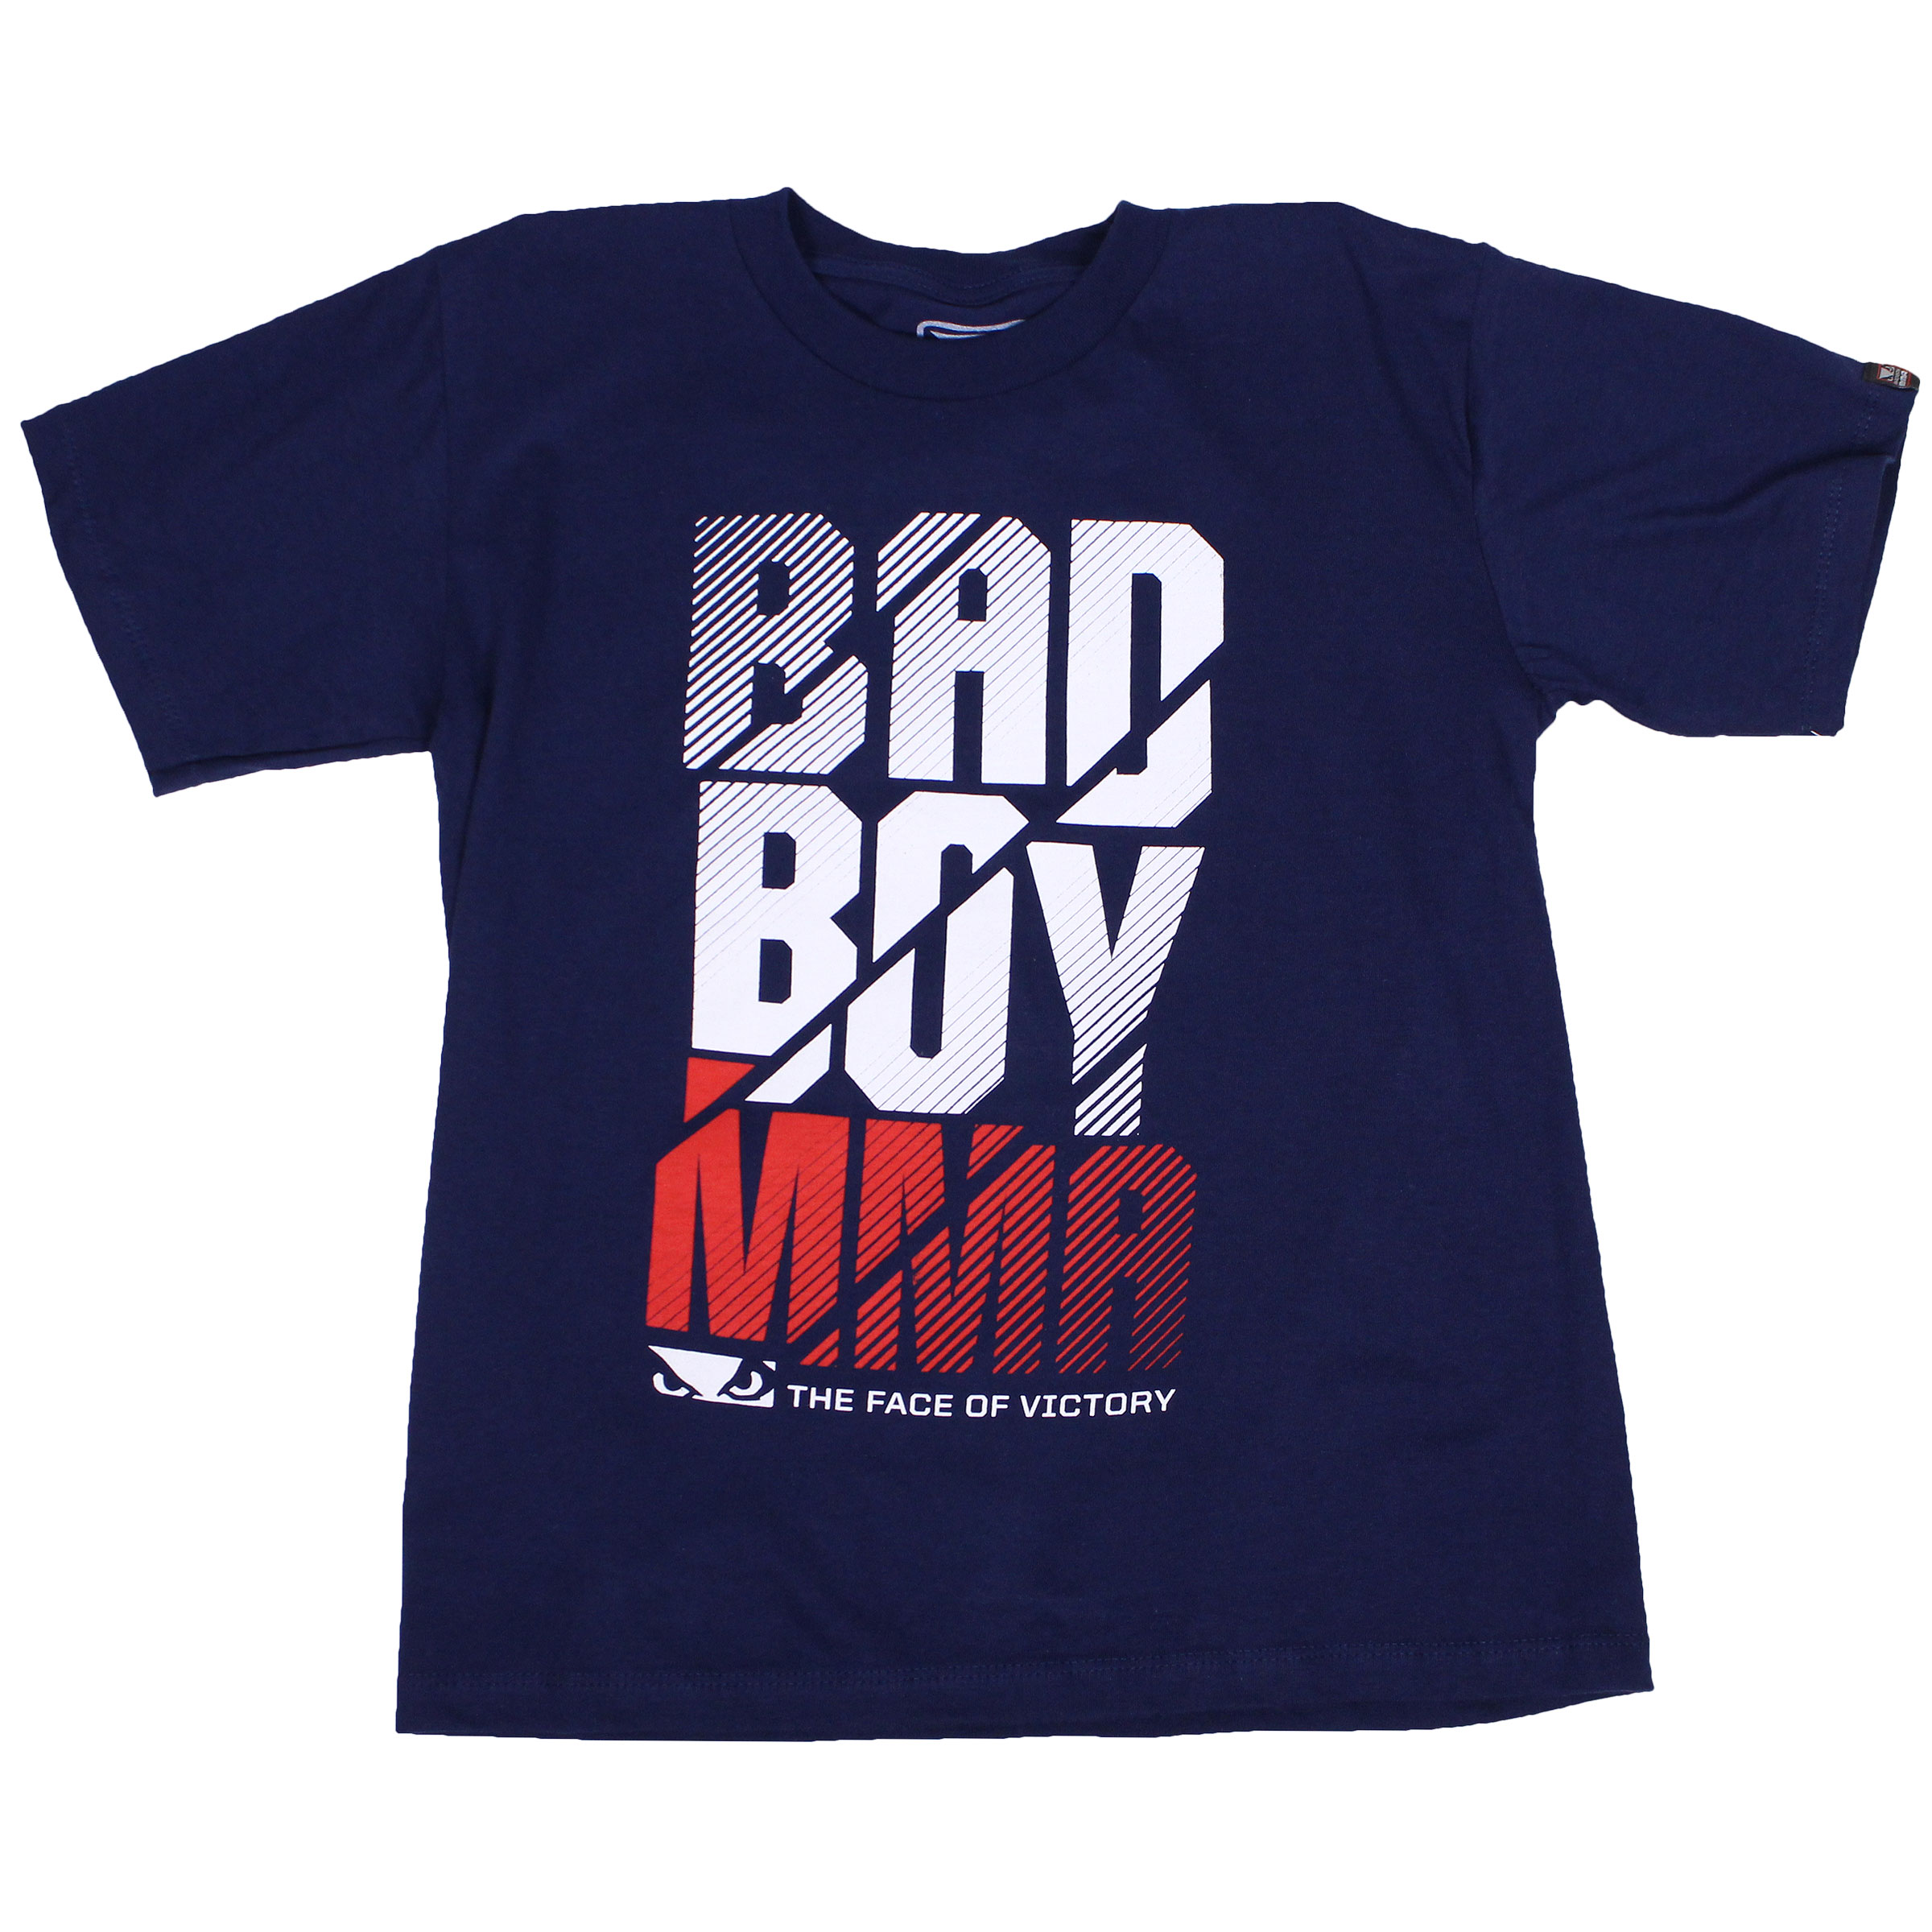 Bad Boy Kids Bold Kids Shirt